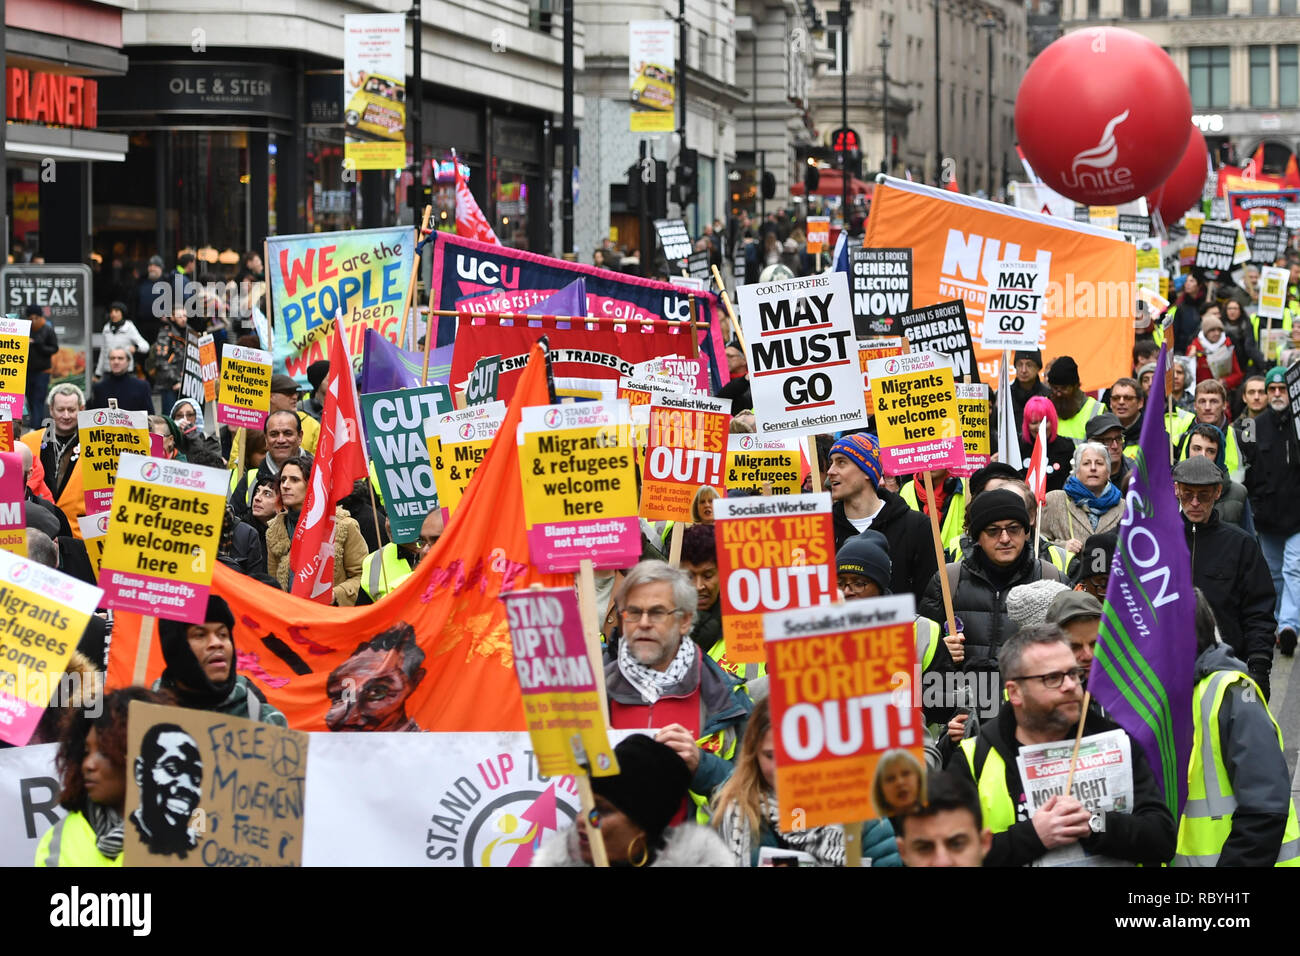 People's Assembly Against Austerity stage a 'yellow vest'-inspired rally in central London calling for a general election. - Stock Image